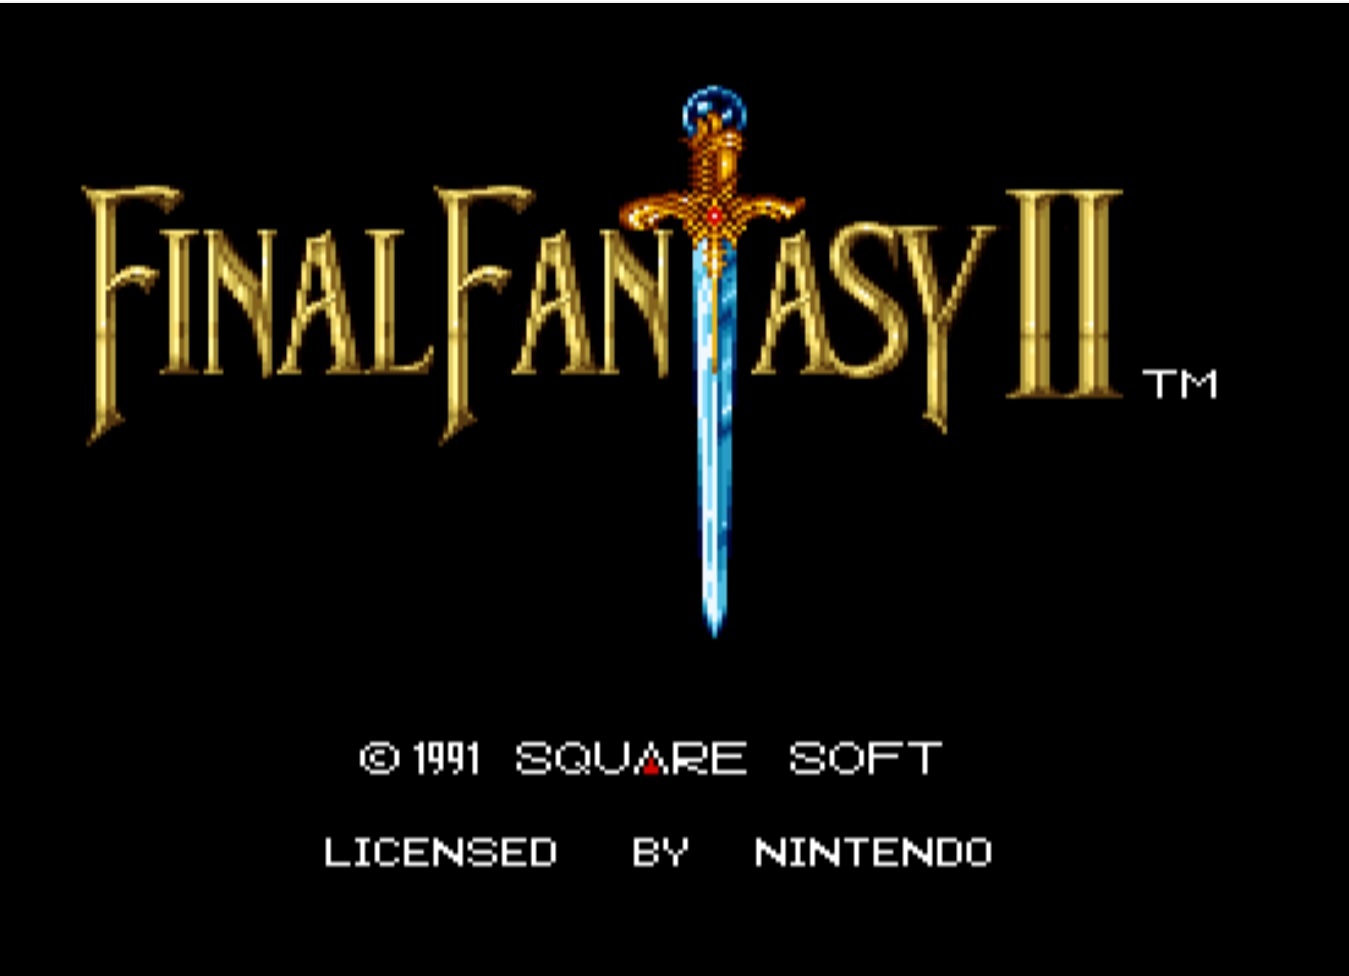 Final Fantasy II (Rev A)